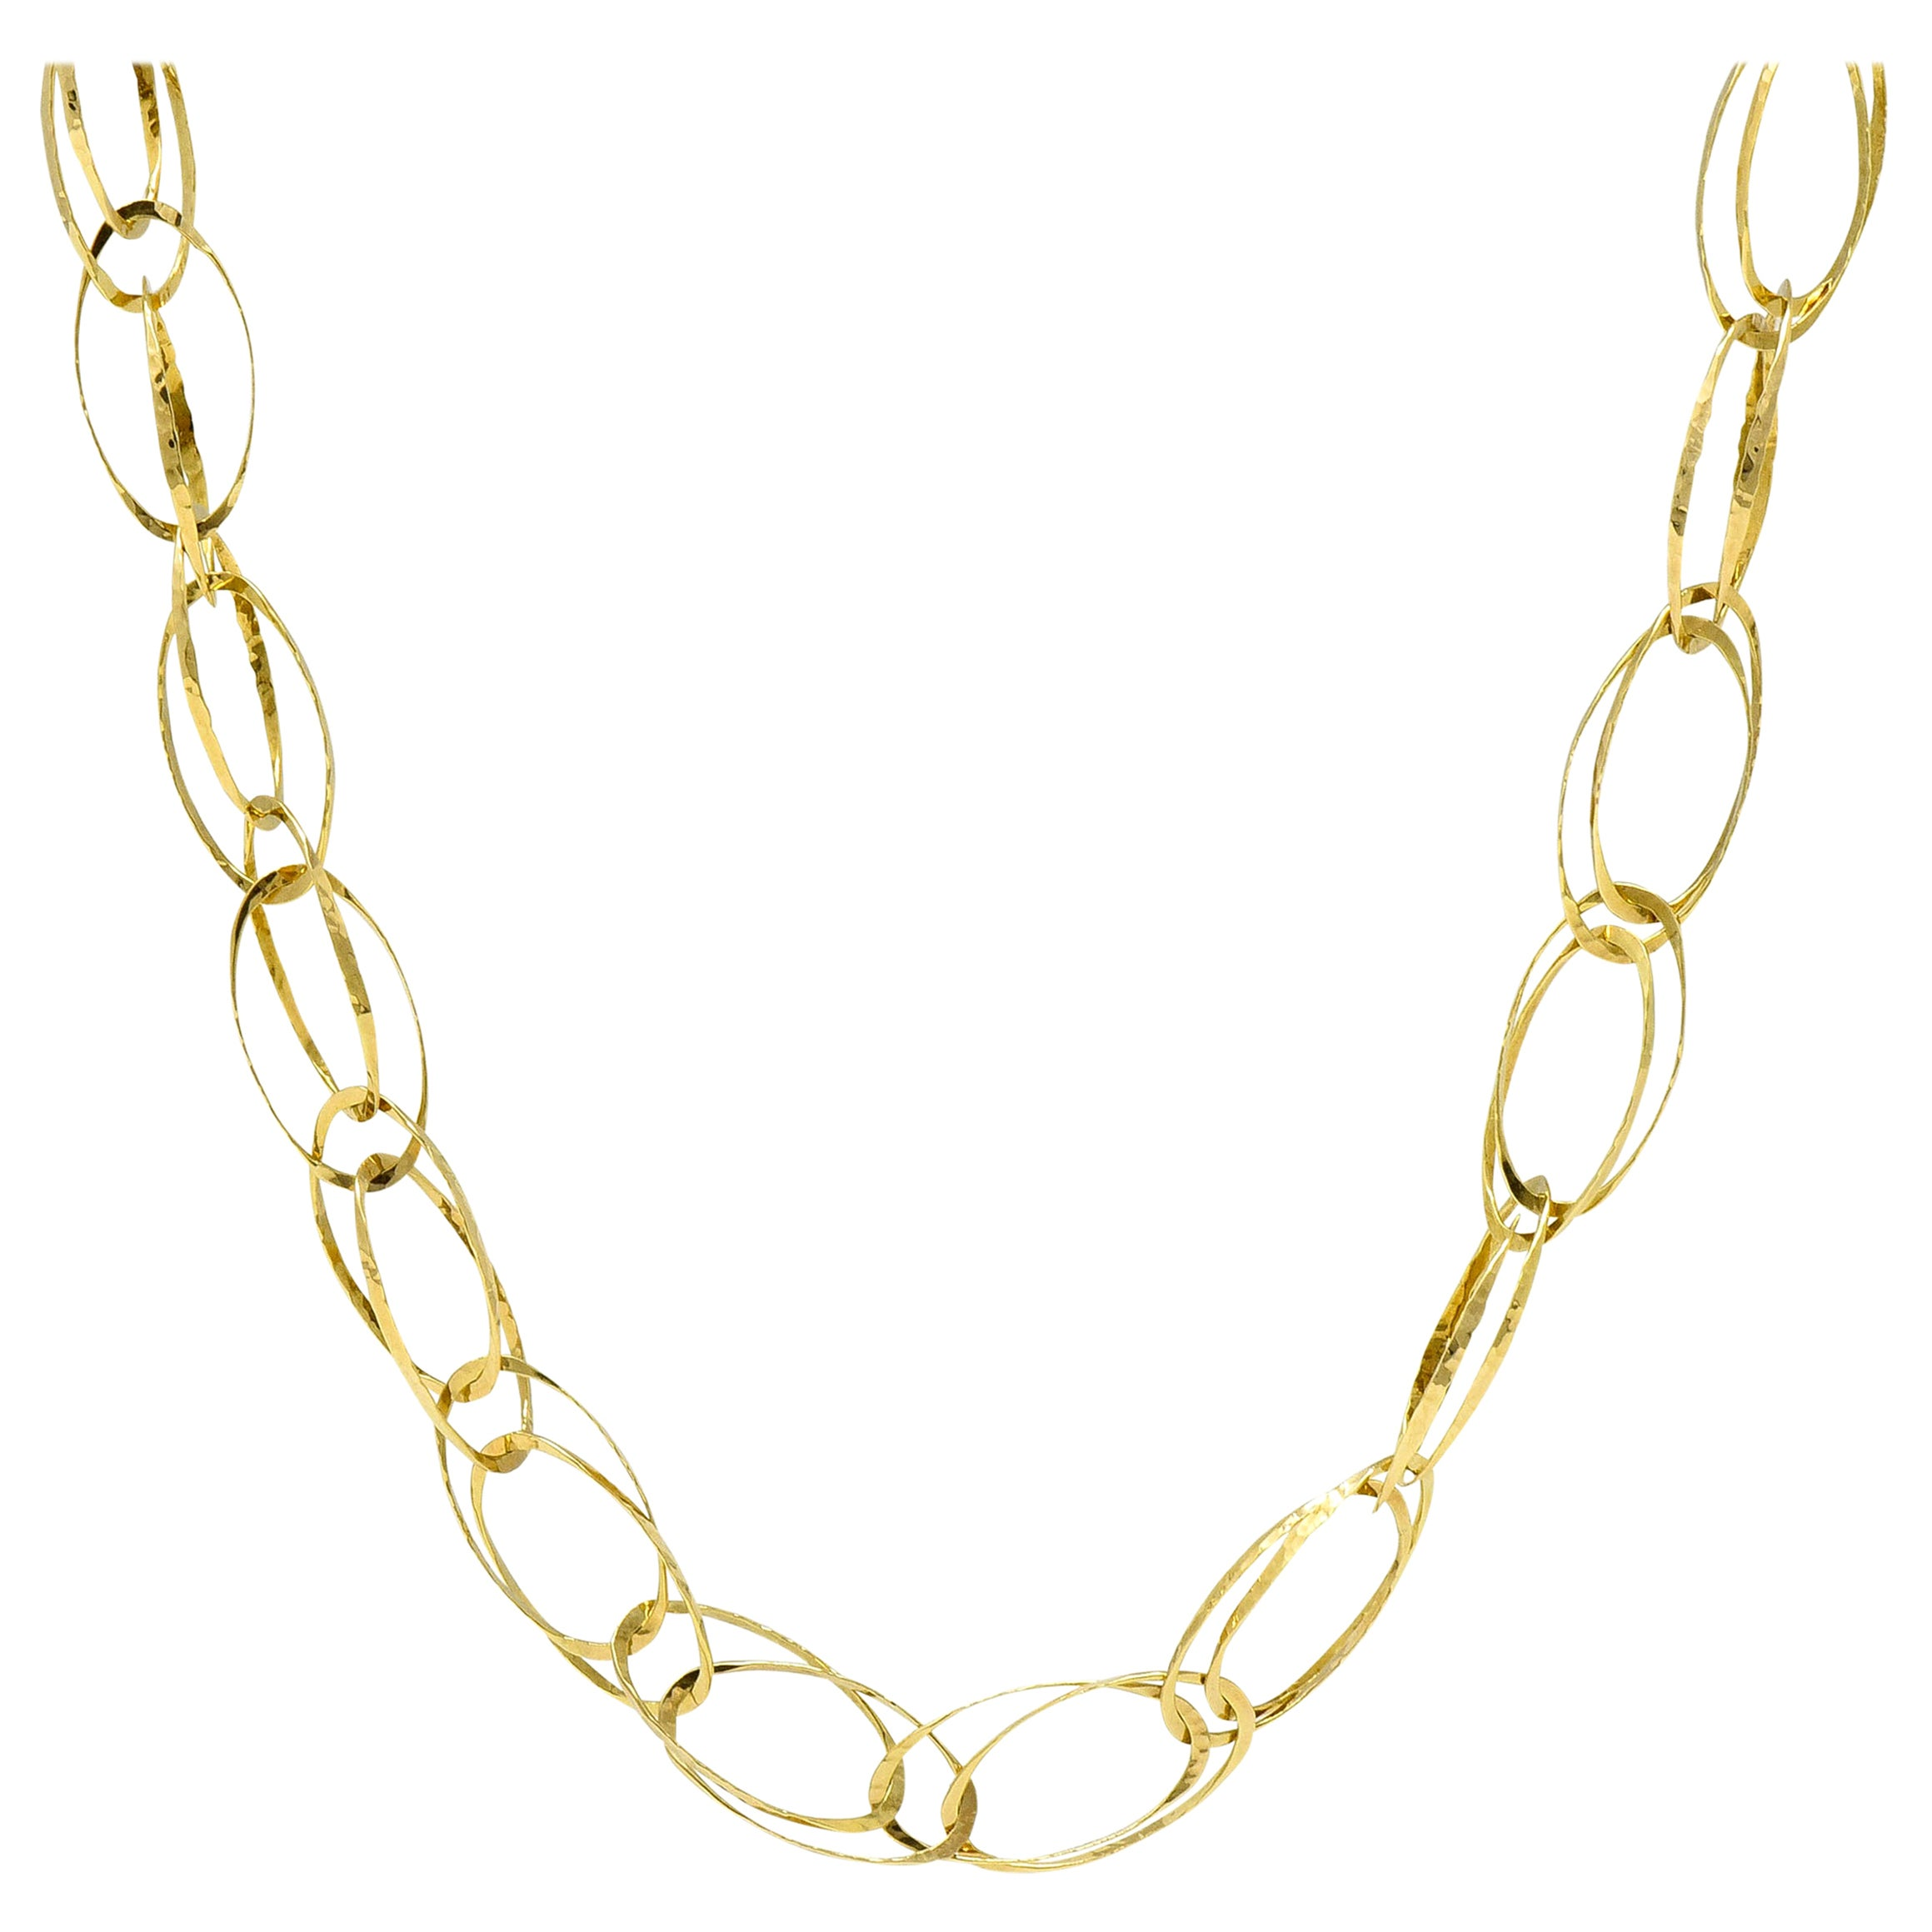 Contemporary 18 Karat Gold Yellow Hammered Link Necklace